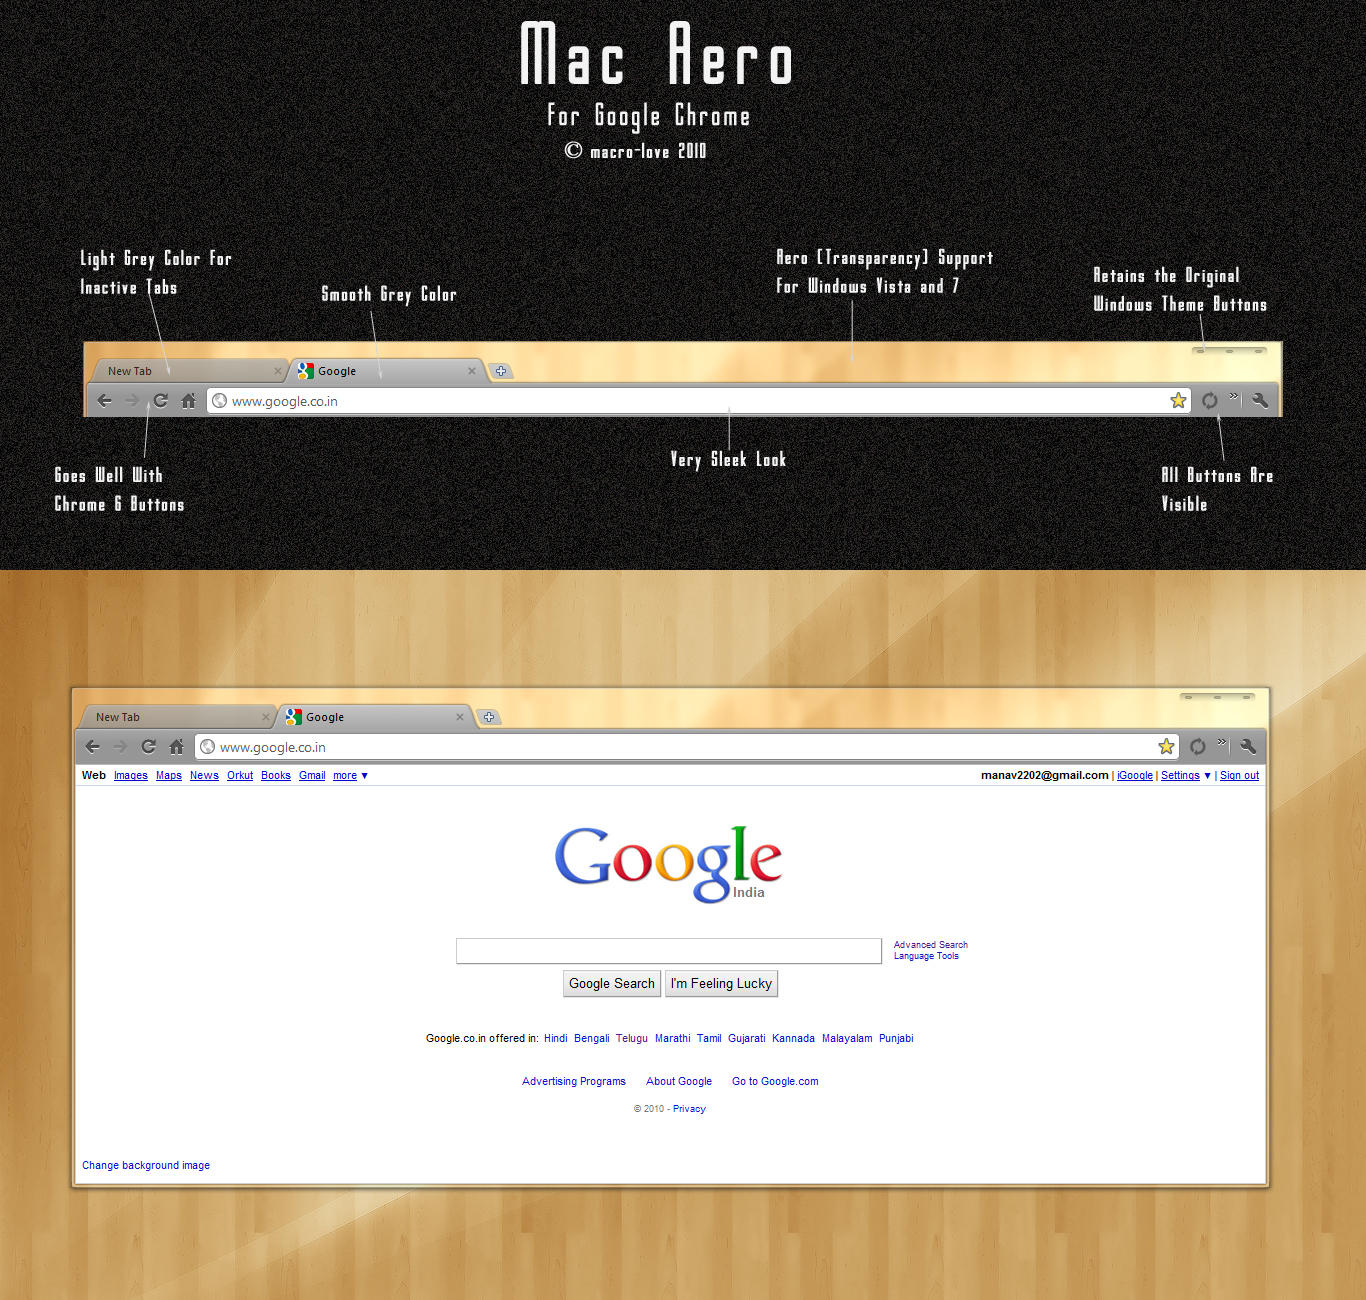 Mac Aero For Google Chrome by mACrO-lOvE